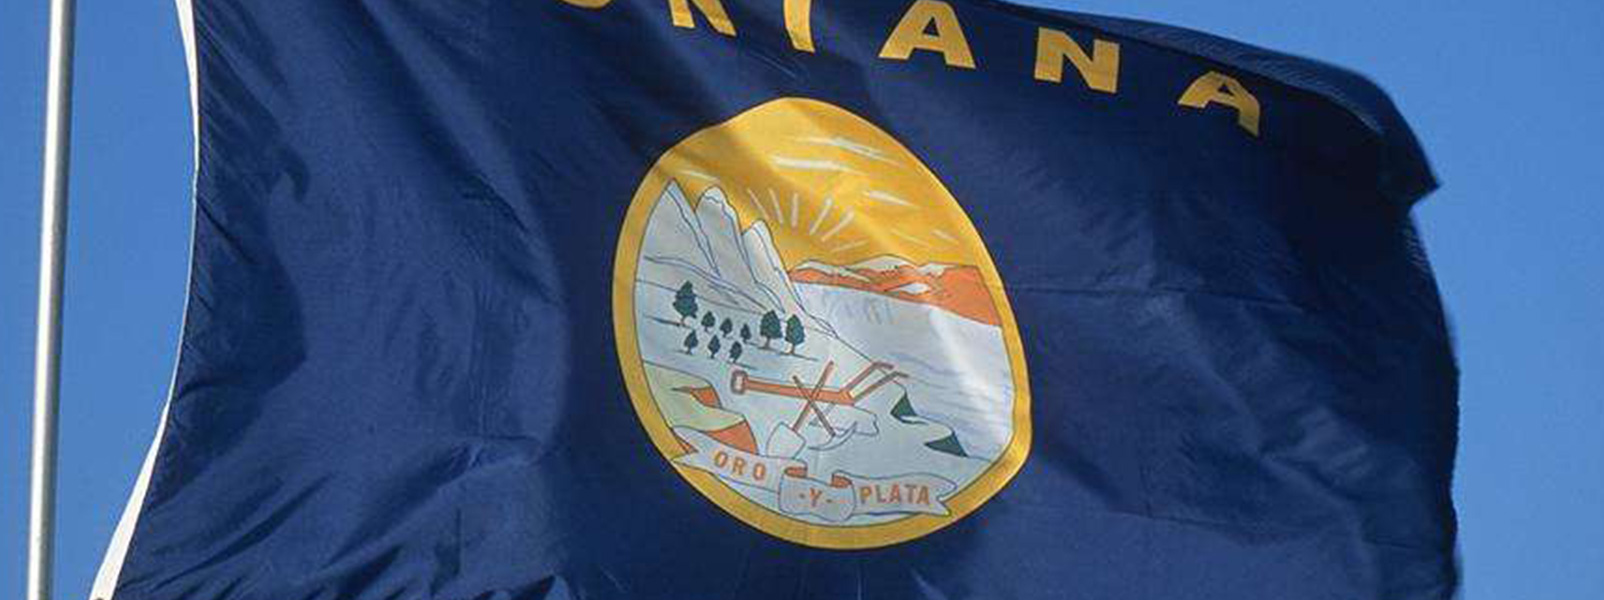 MONTANA: FULL GAME SUPPRESSOR HUNTING NOW LEGAL